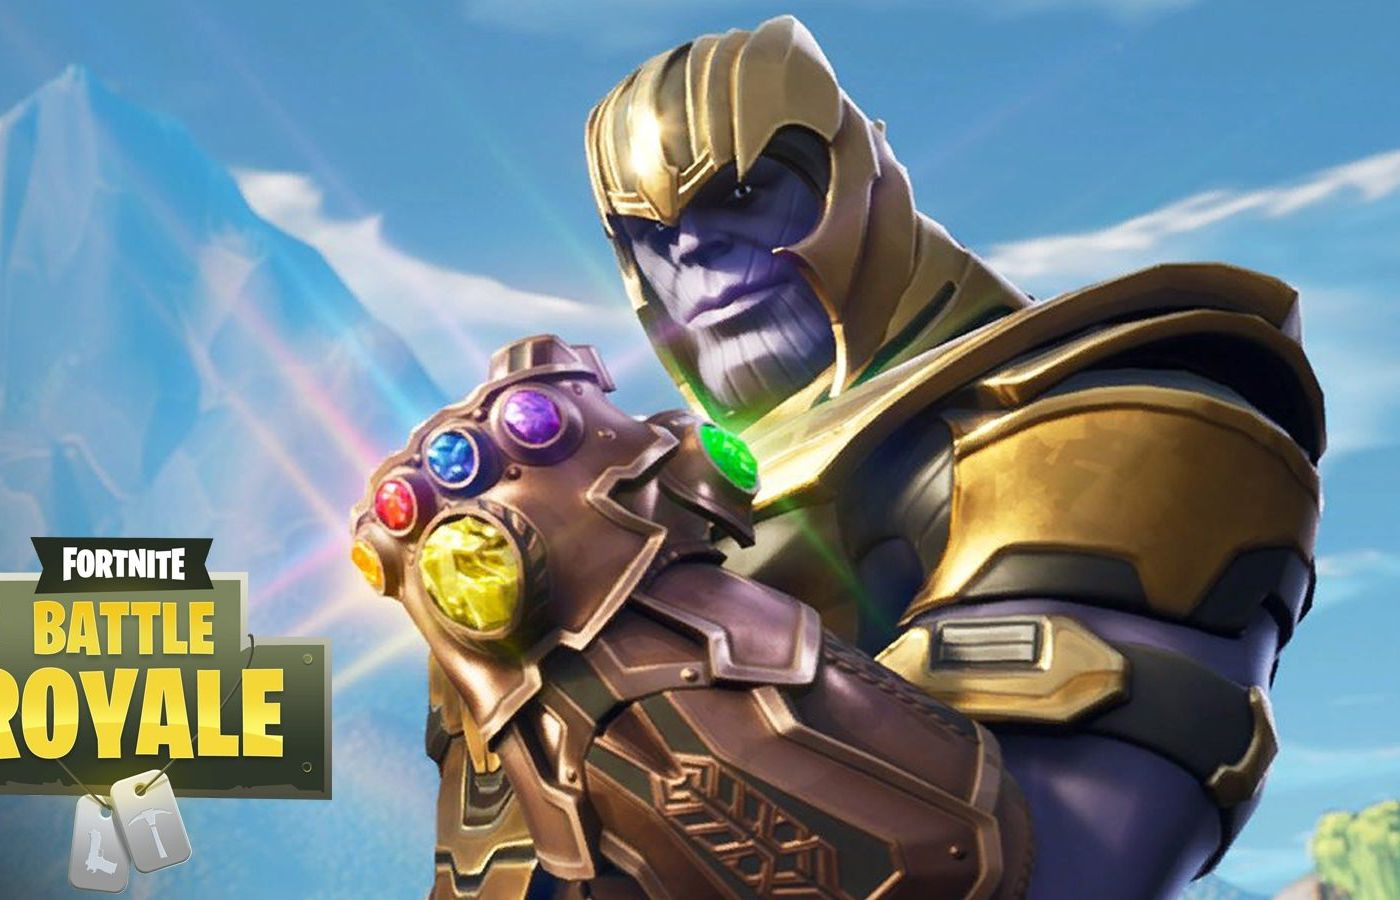 Fortnite's Marvel themed content